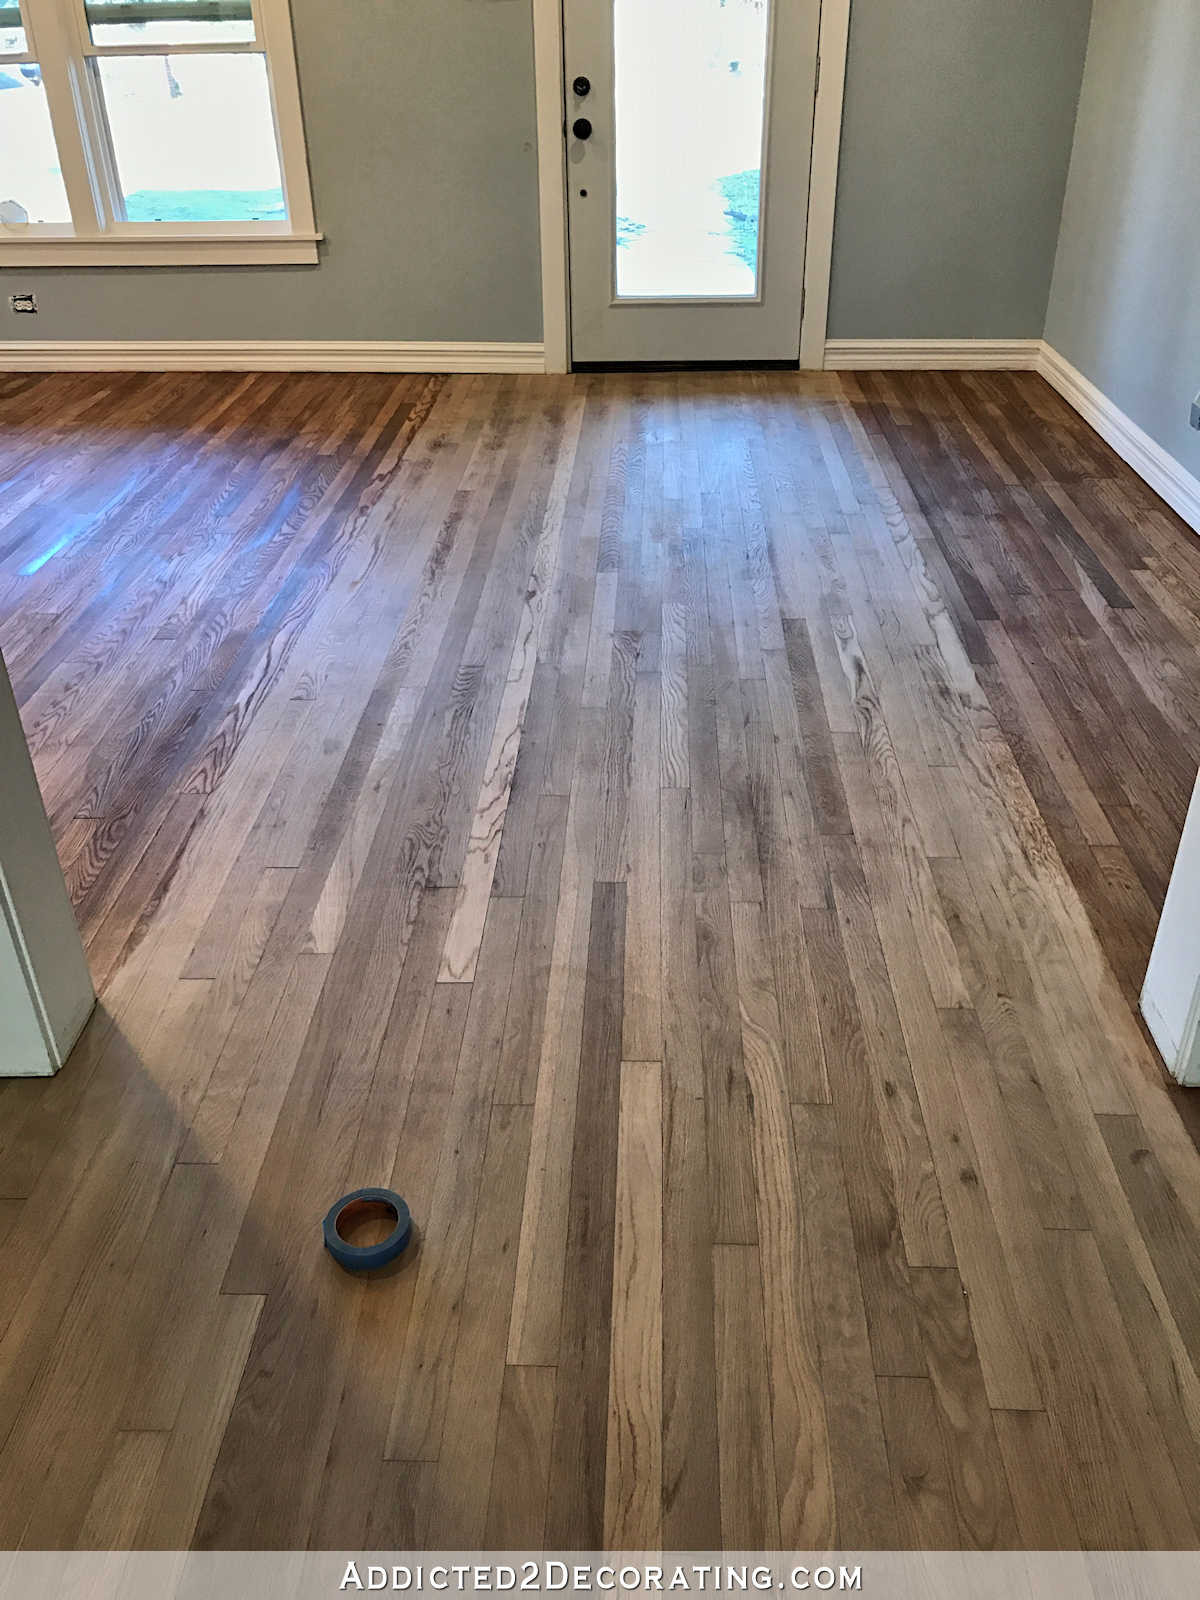 hardwood flooring trends for 2017 of adventures in staining my red oak hardwood floors products process for staining red oak hardwood floors 4 entryway and living room wood conditioner